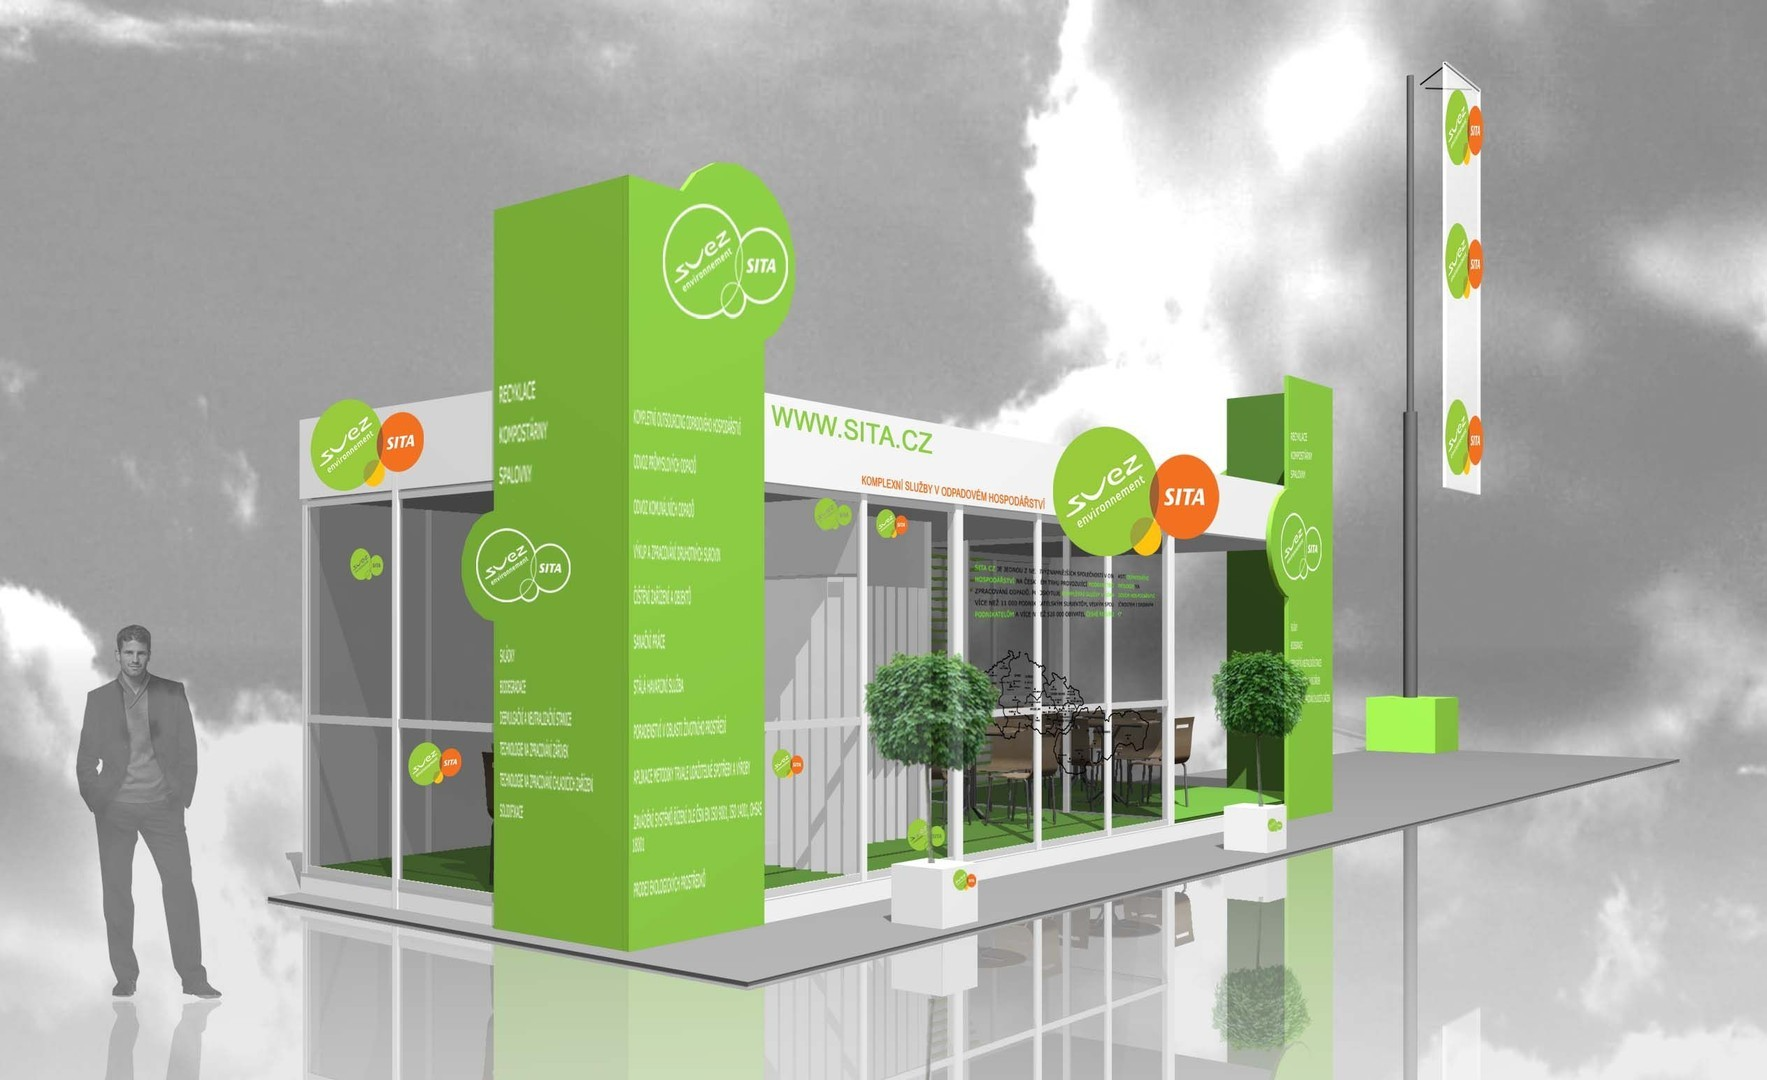 Exhibition Stand Graphic Design : Outdoor exhibition stands bvv trade fairs brno